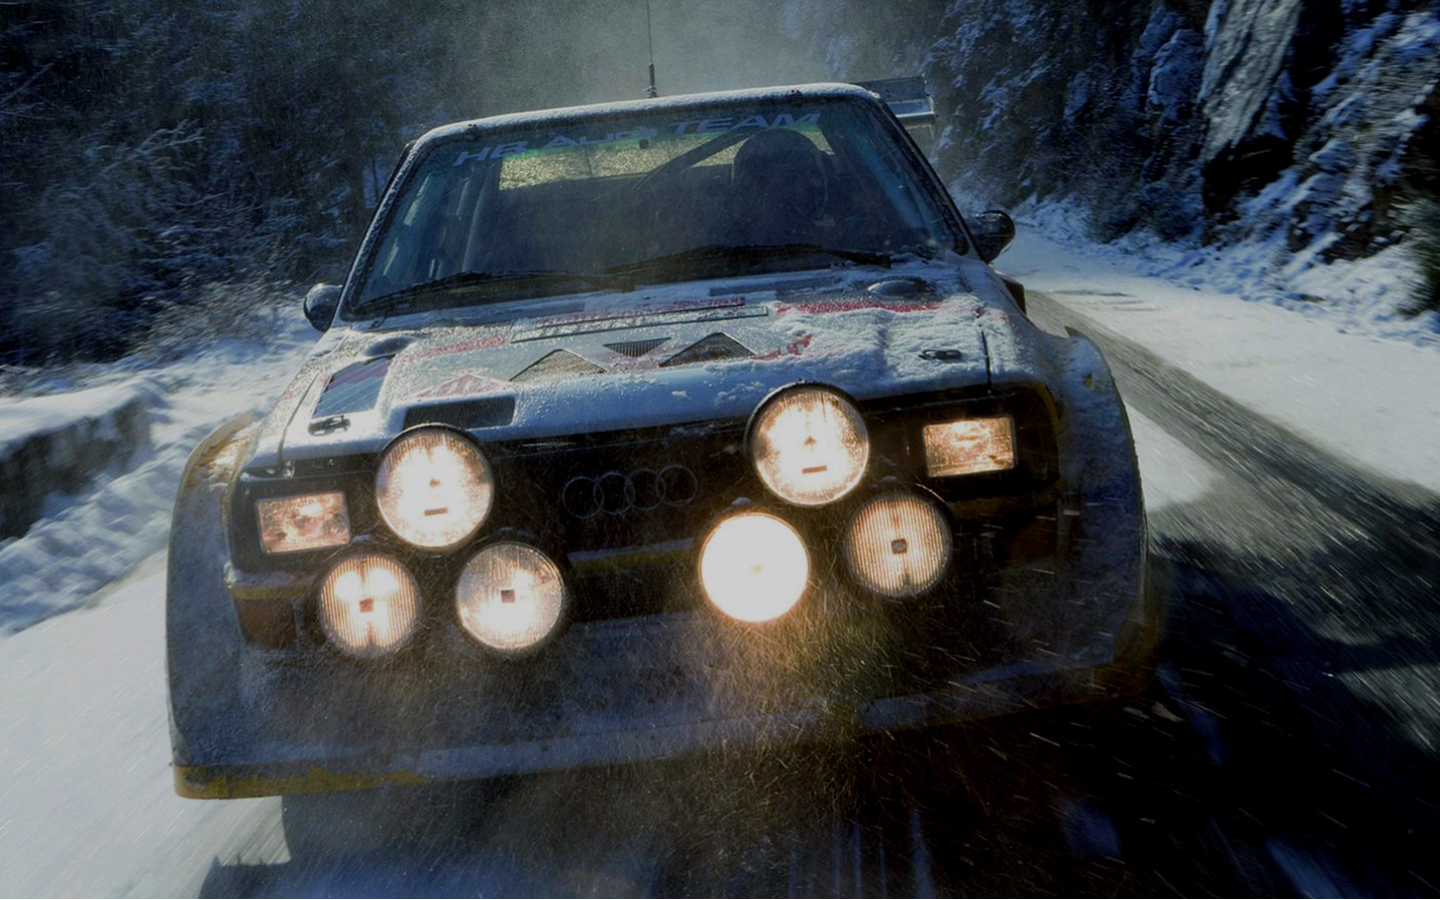 cars Audi rally Quattro HD Wallpaper